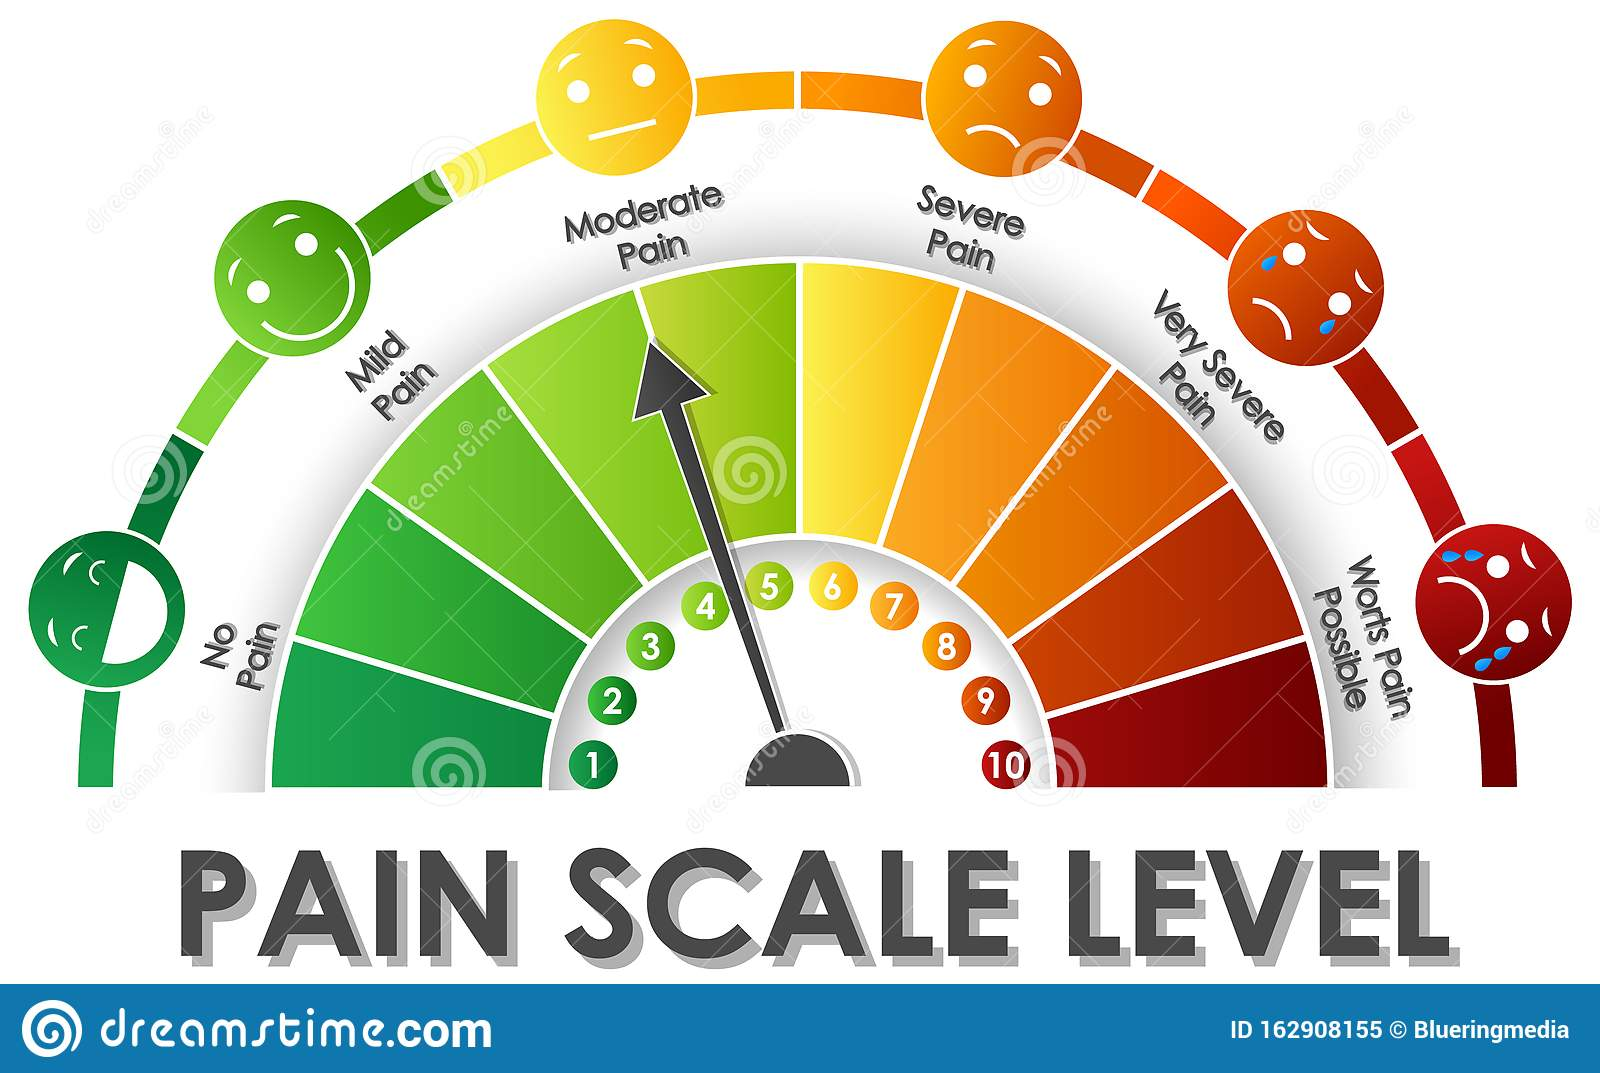 Diagram Showing Pain Scale Level With Different Colors Stock Vector